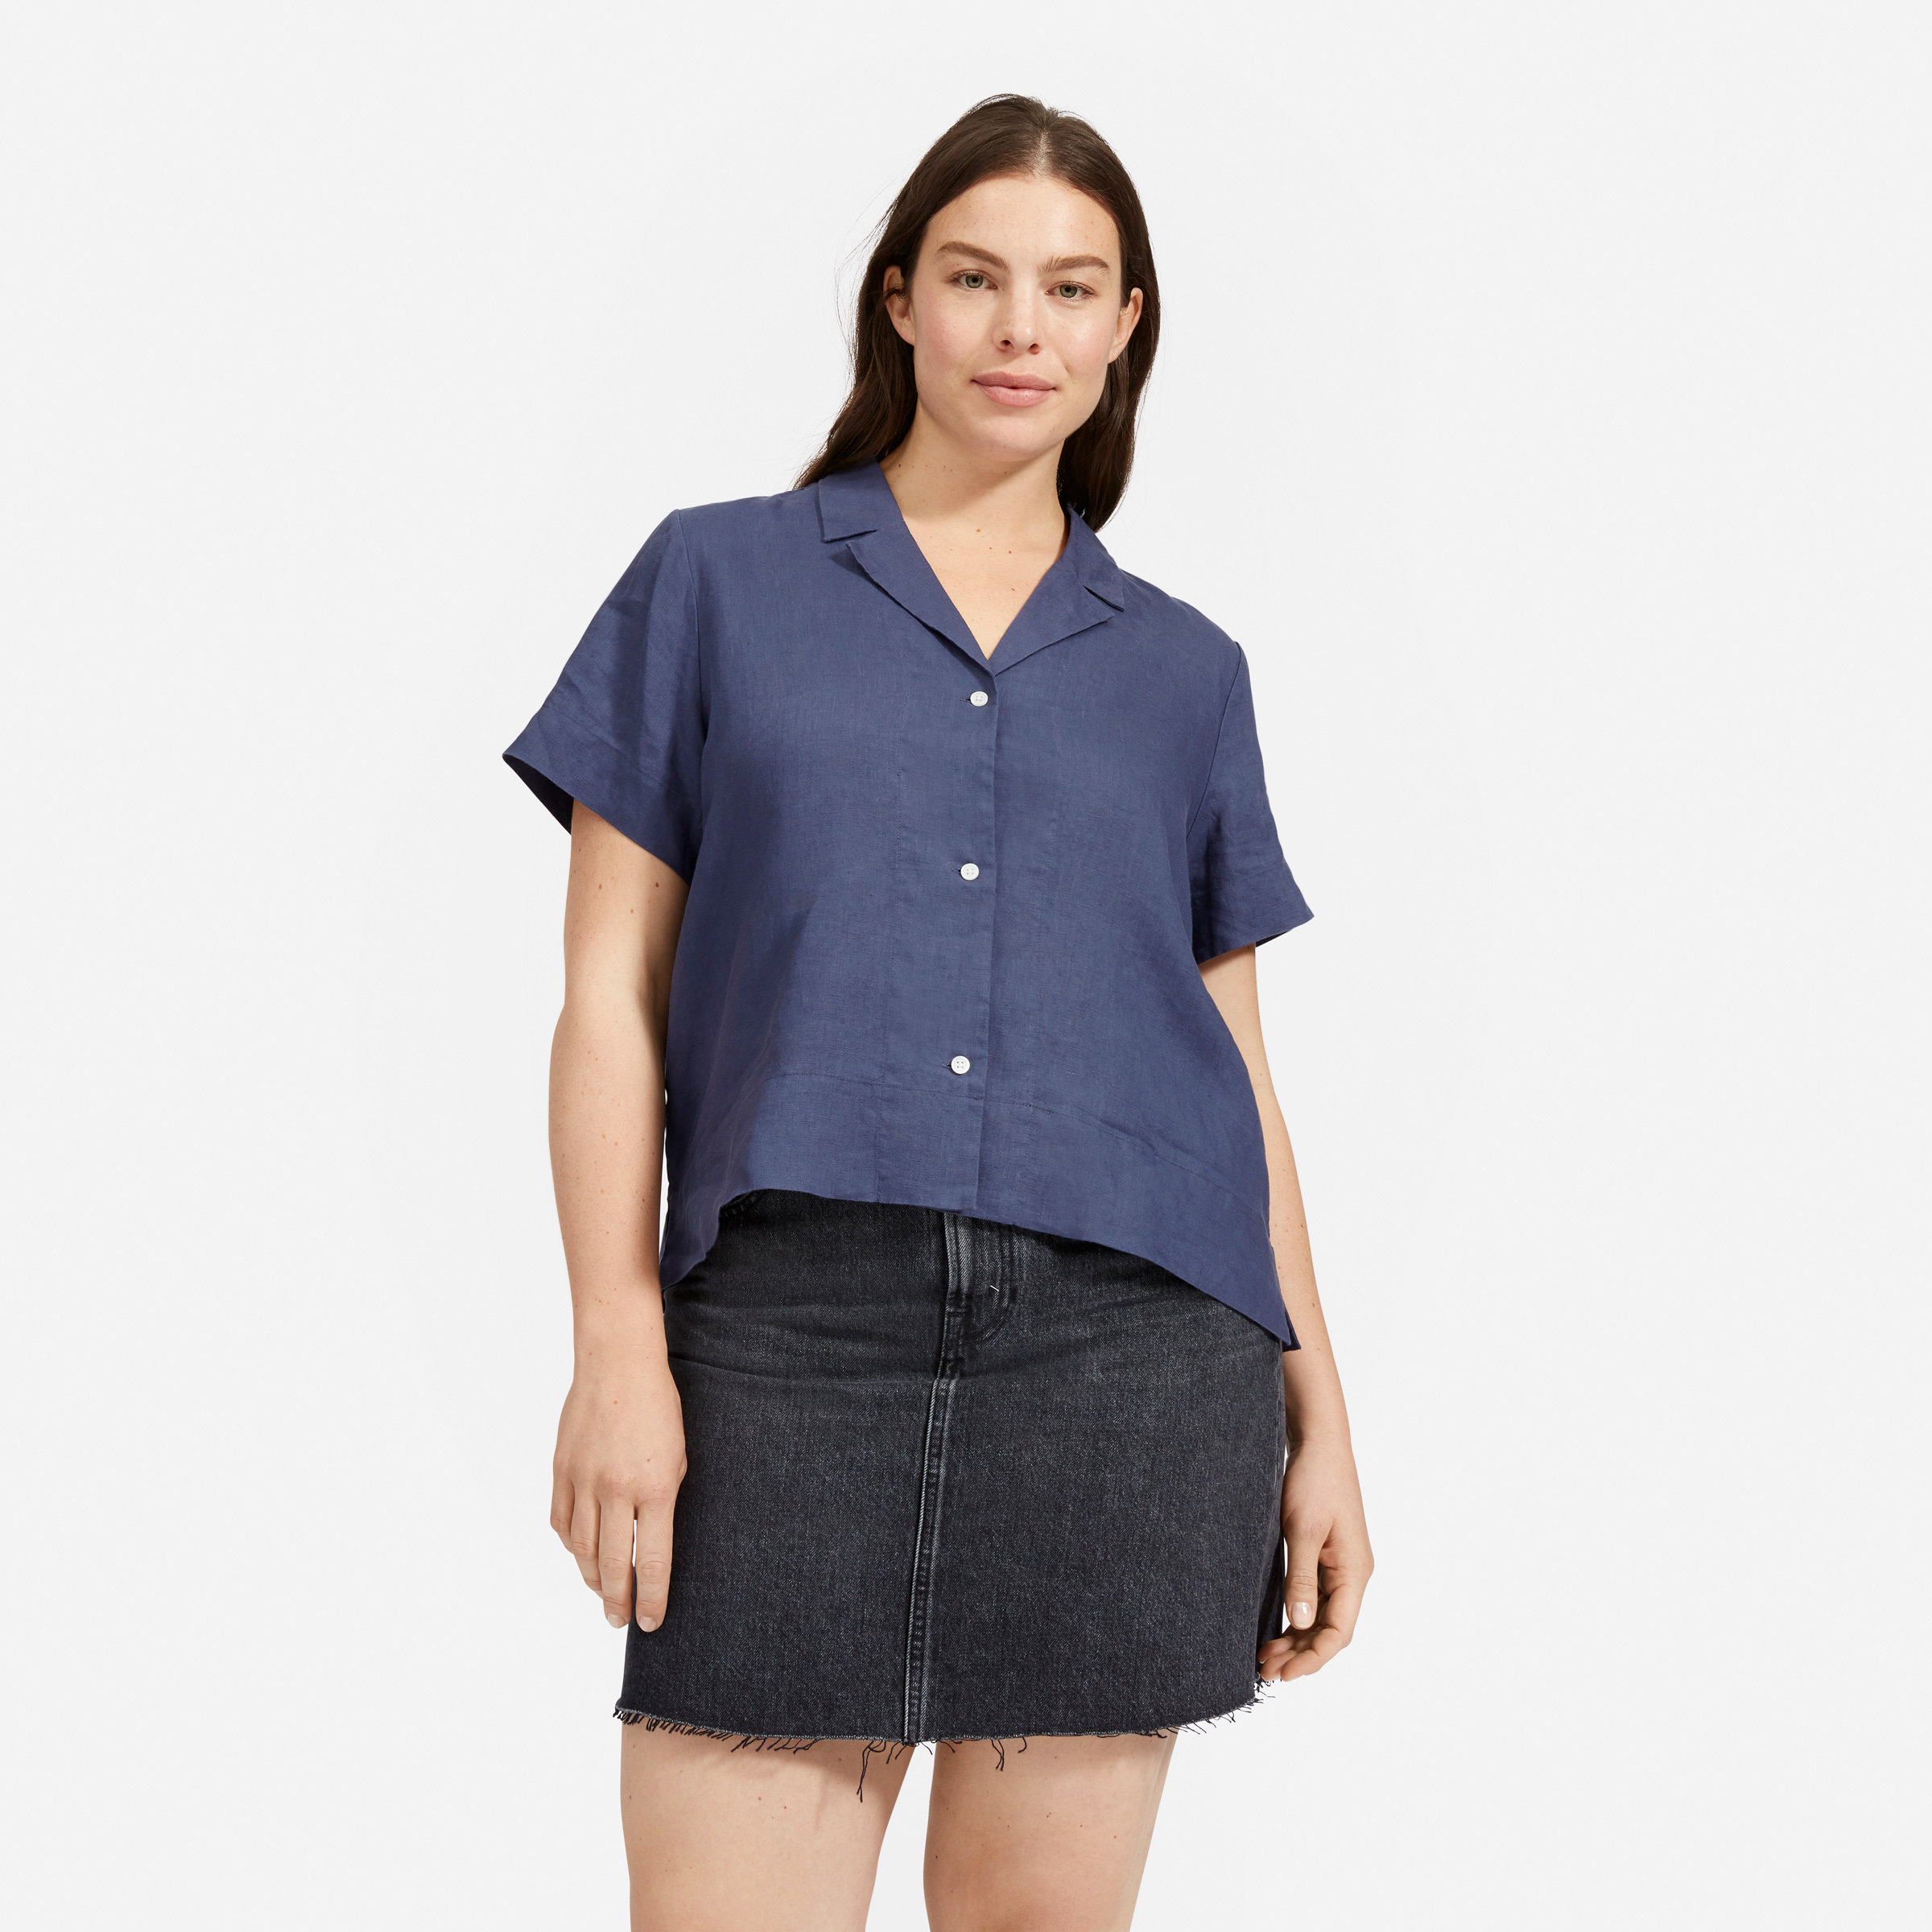 THE LINEN NOTCH SHORT-SLEEVE SHIRT